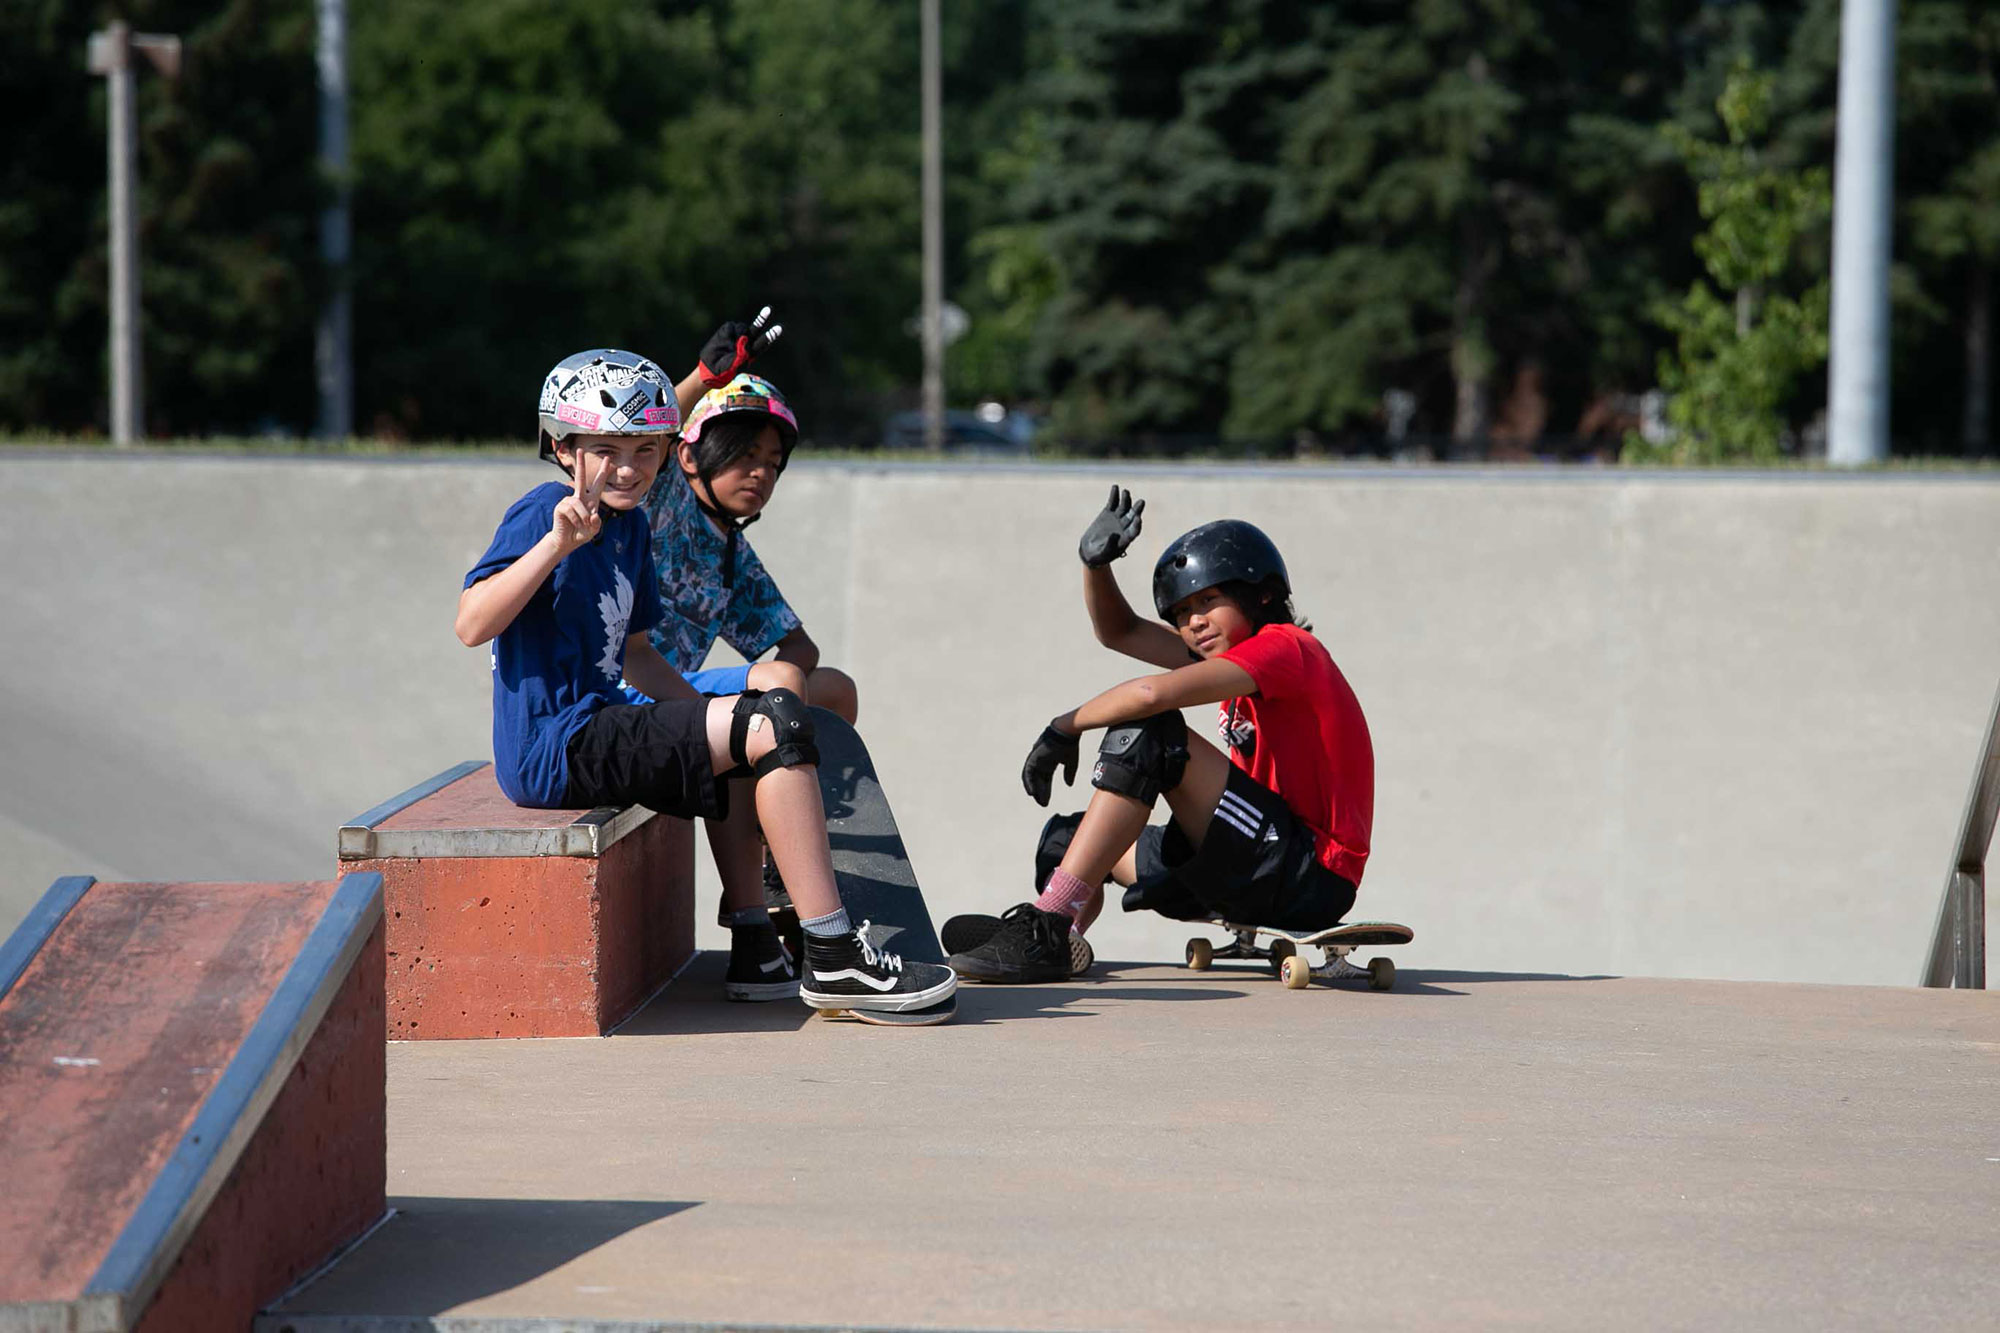 SUMMER IS COMING! Skateboard & Scooter Camp – Markham 2021